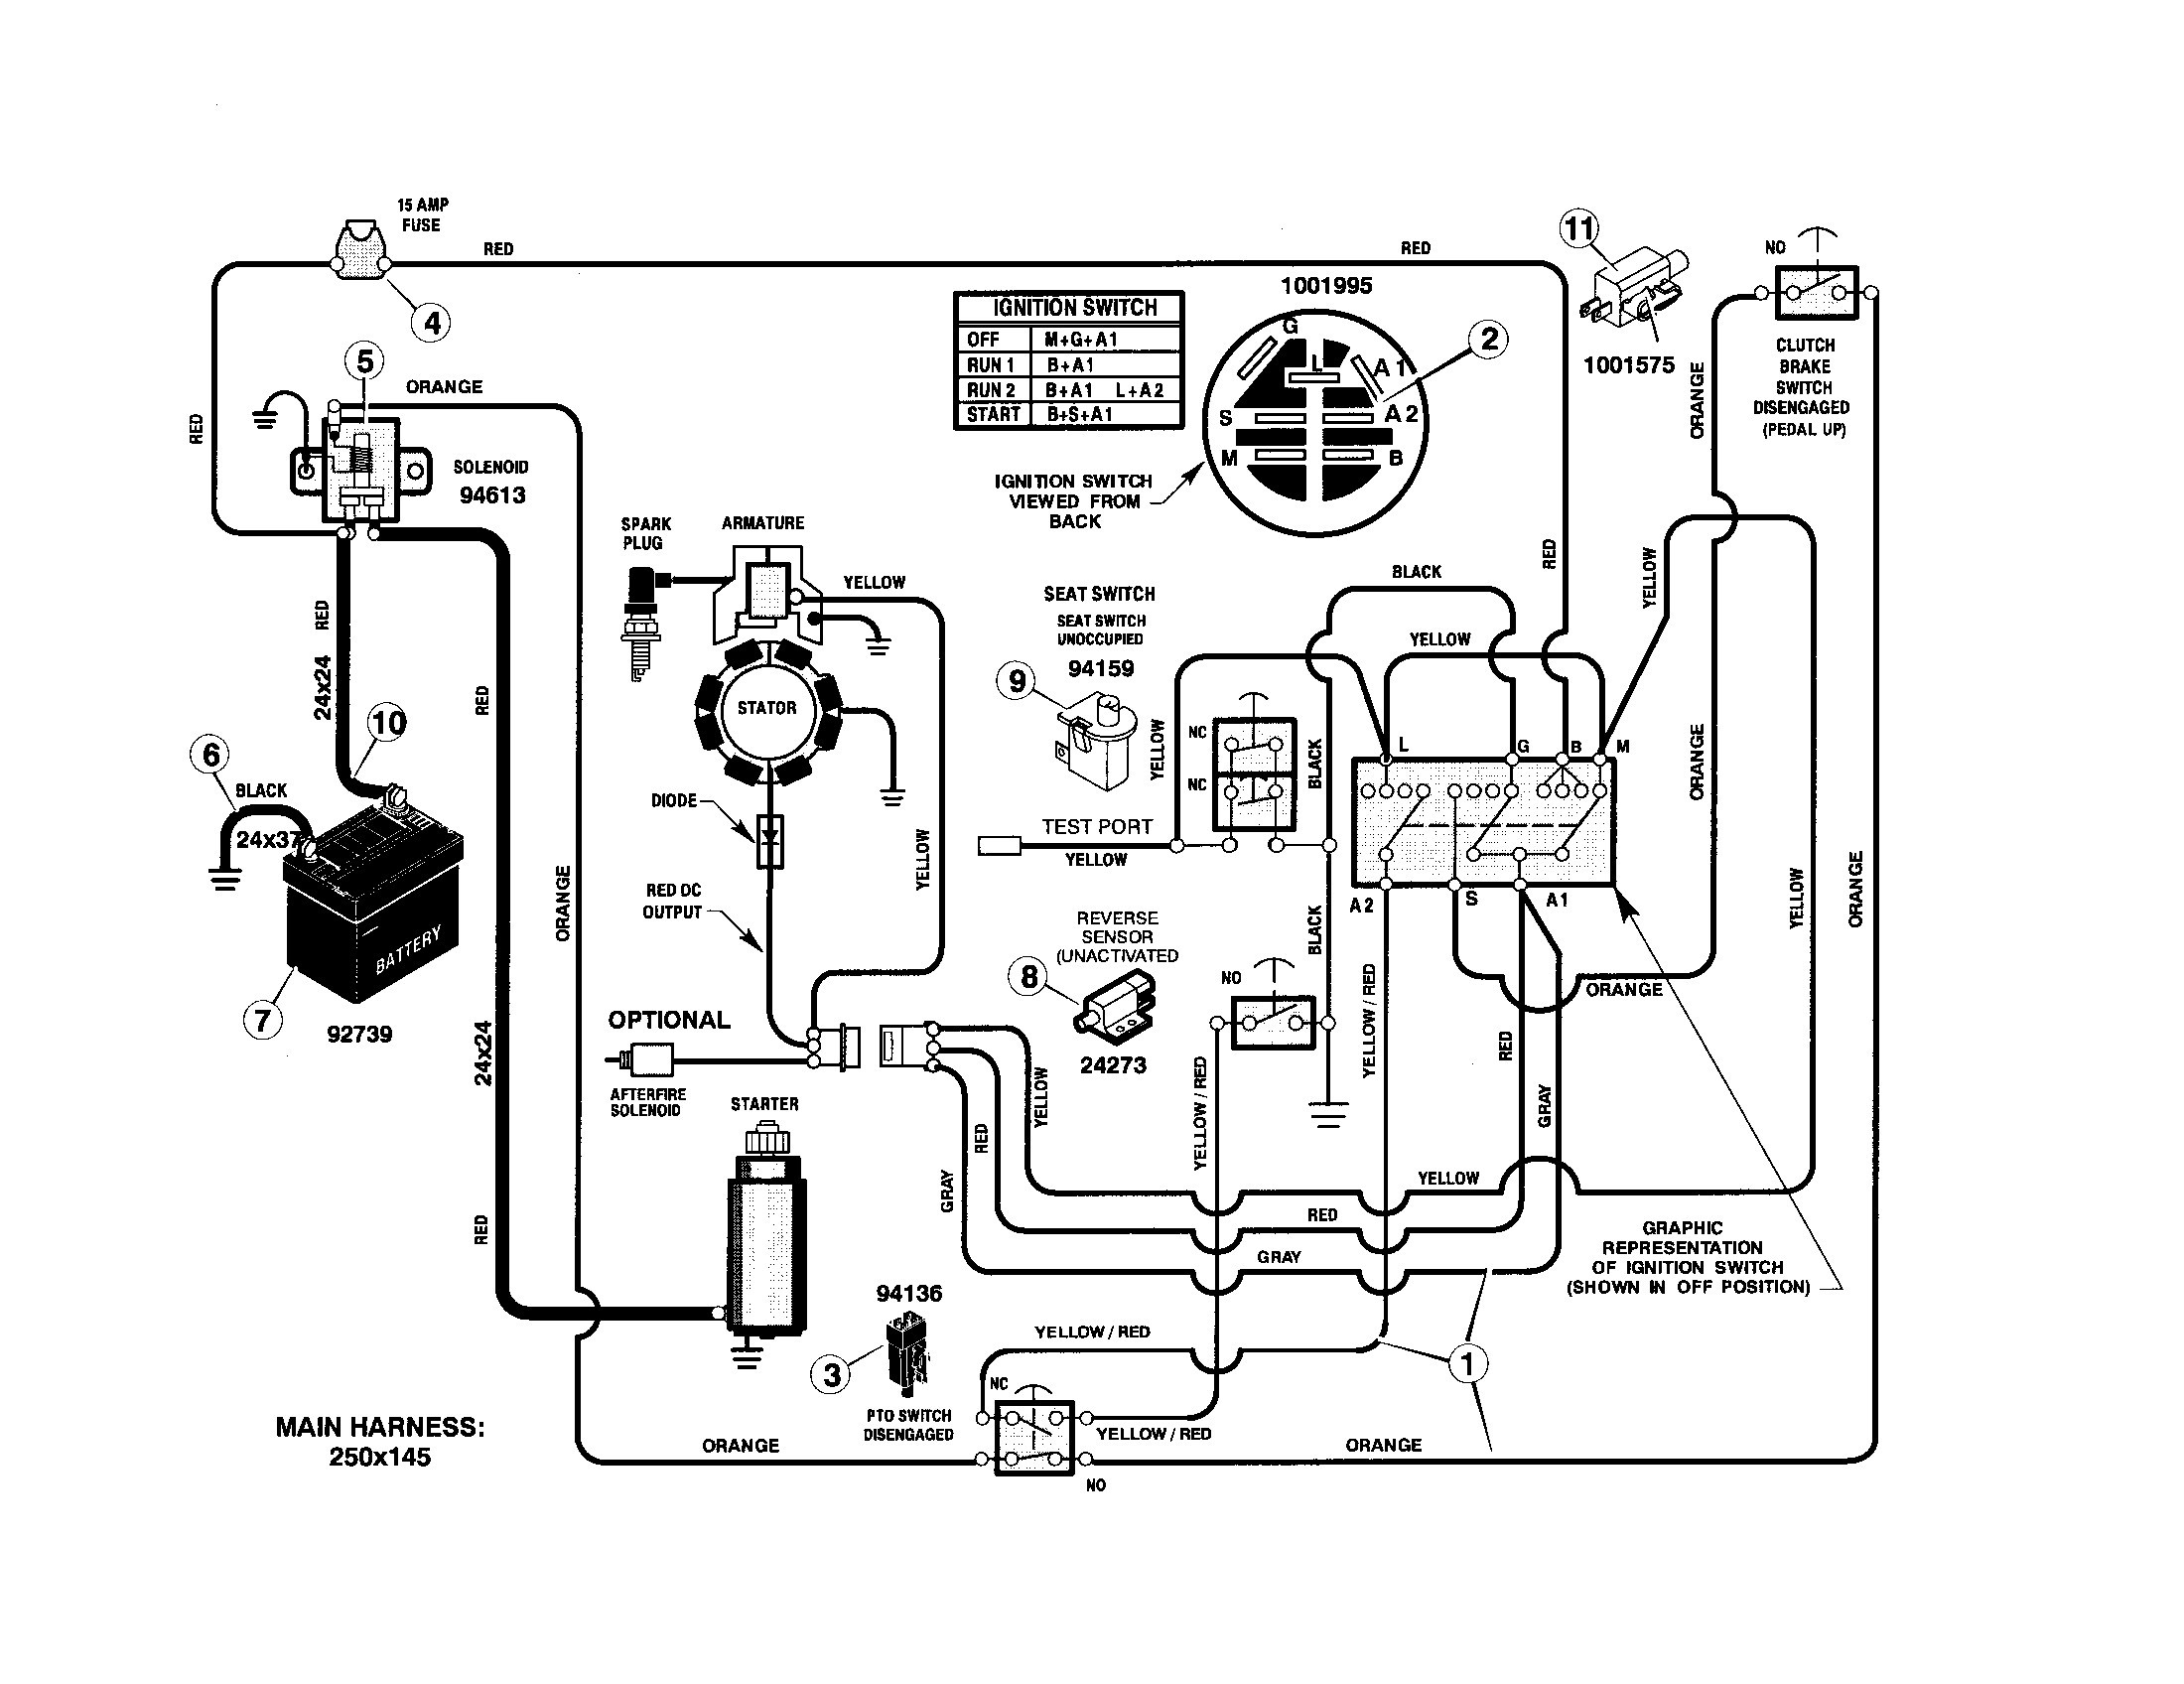 wiring diagram for murray riding lawn mower solenoid ... lawn mower ignition wiring diagram 7 wire murray lawn mower starter wiring diagram